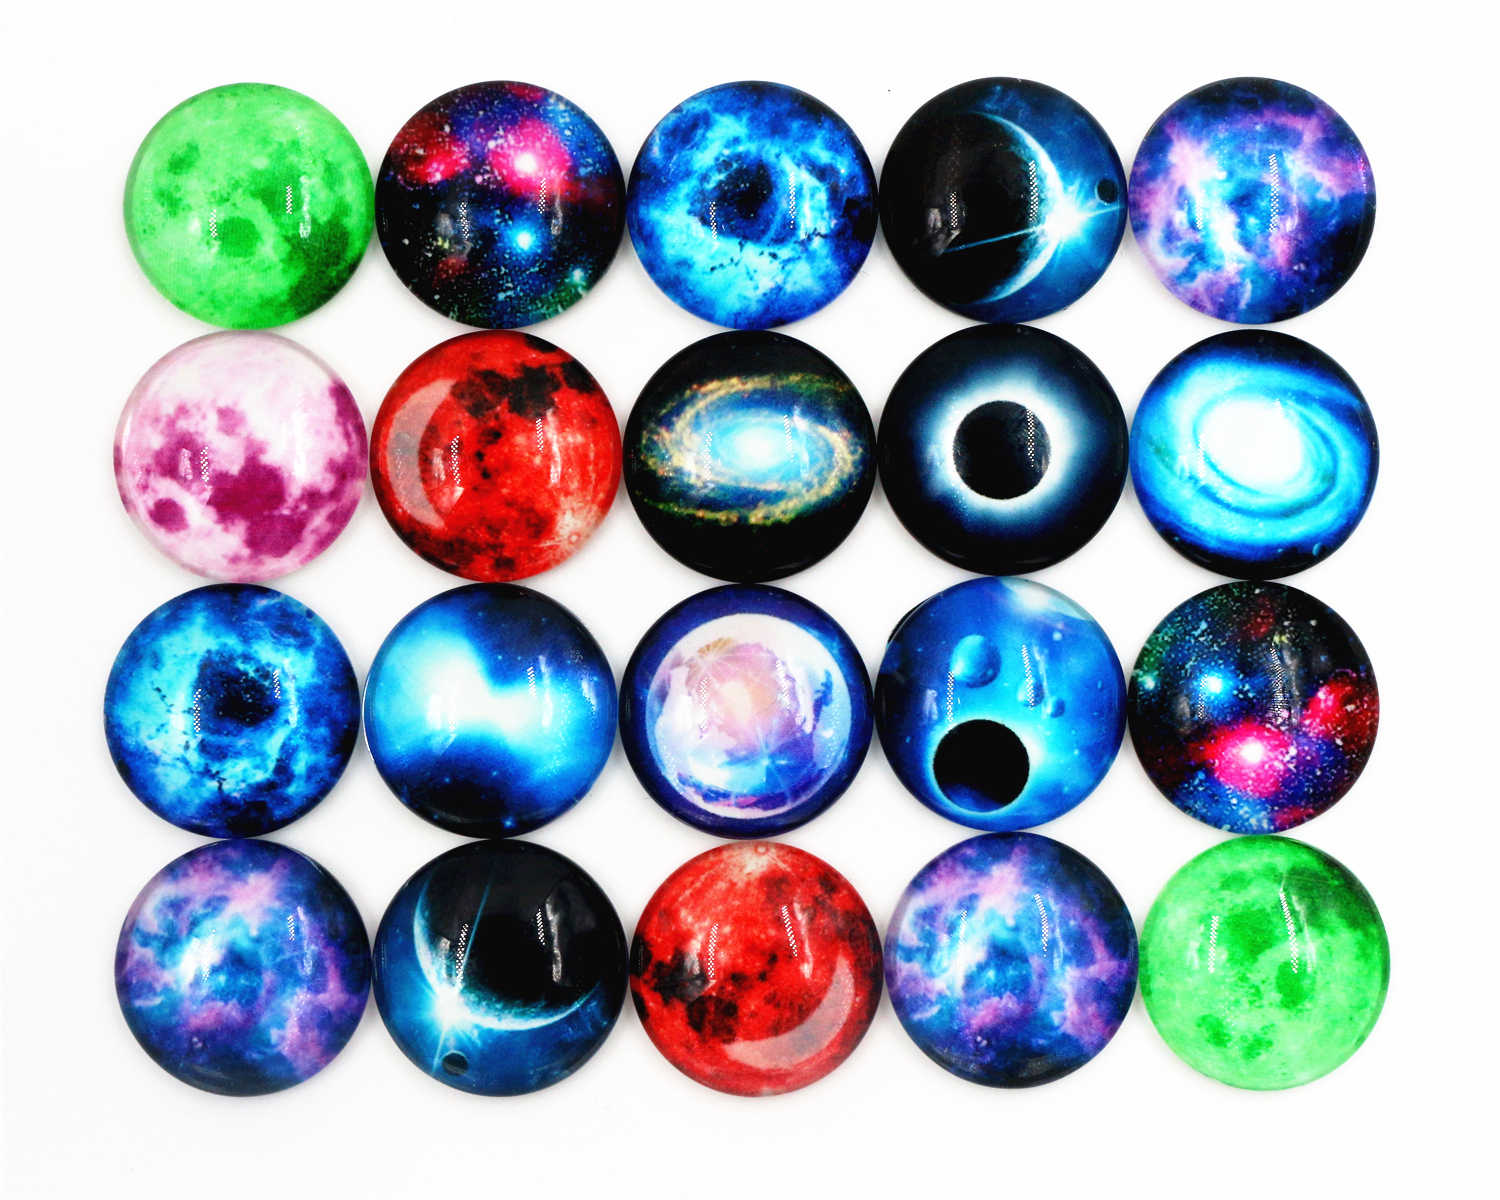 Hot Sale 10pcs 20mm New Fashion Mixed Luminous Stars Handmade Glass Cabochons Pattern Domed Jewelry Accessories Supplies-H4-06